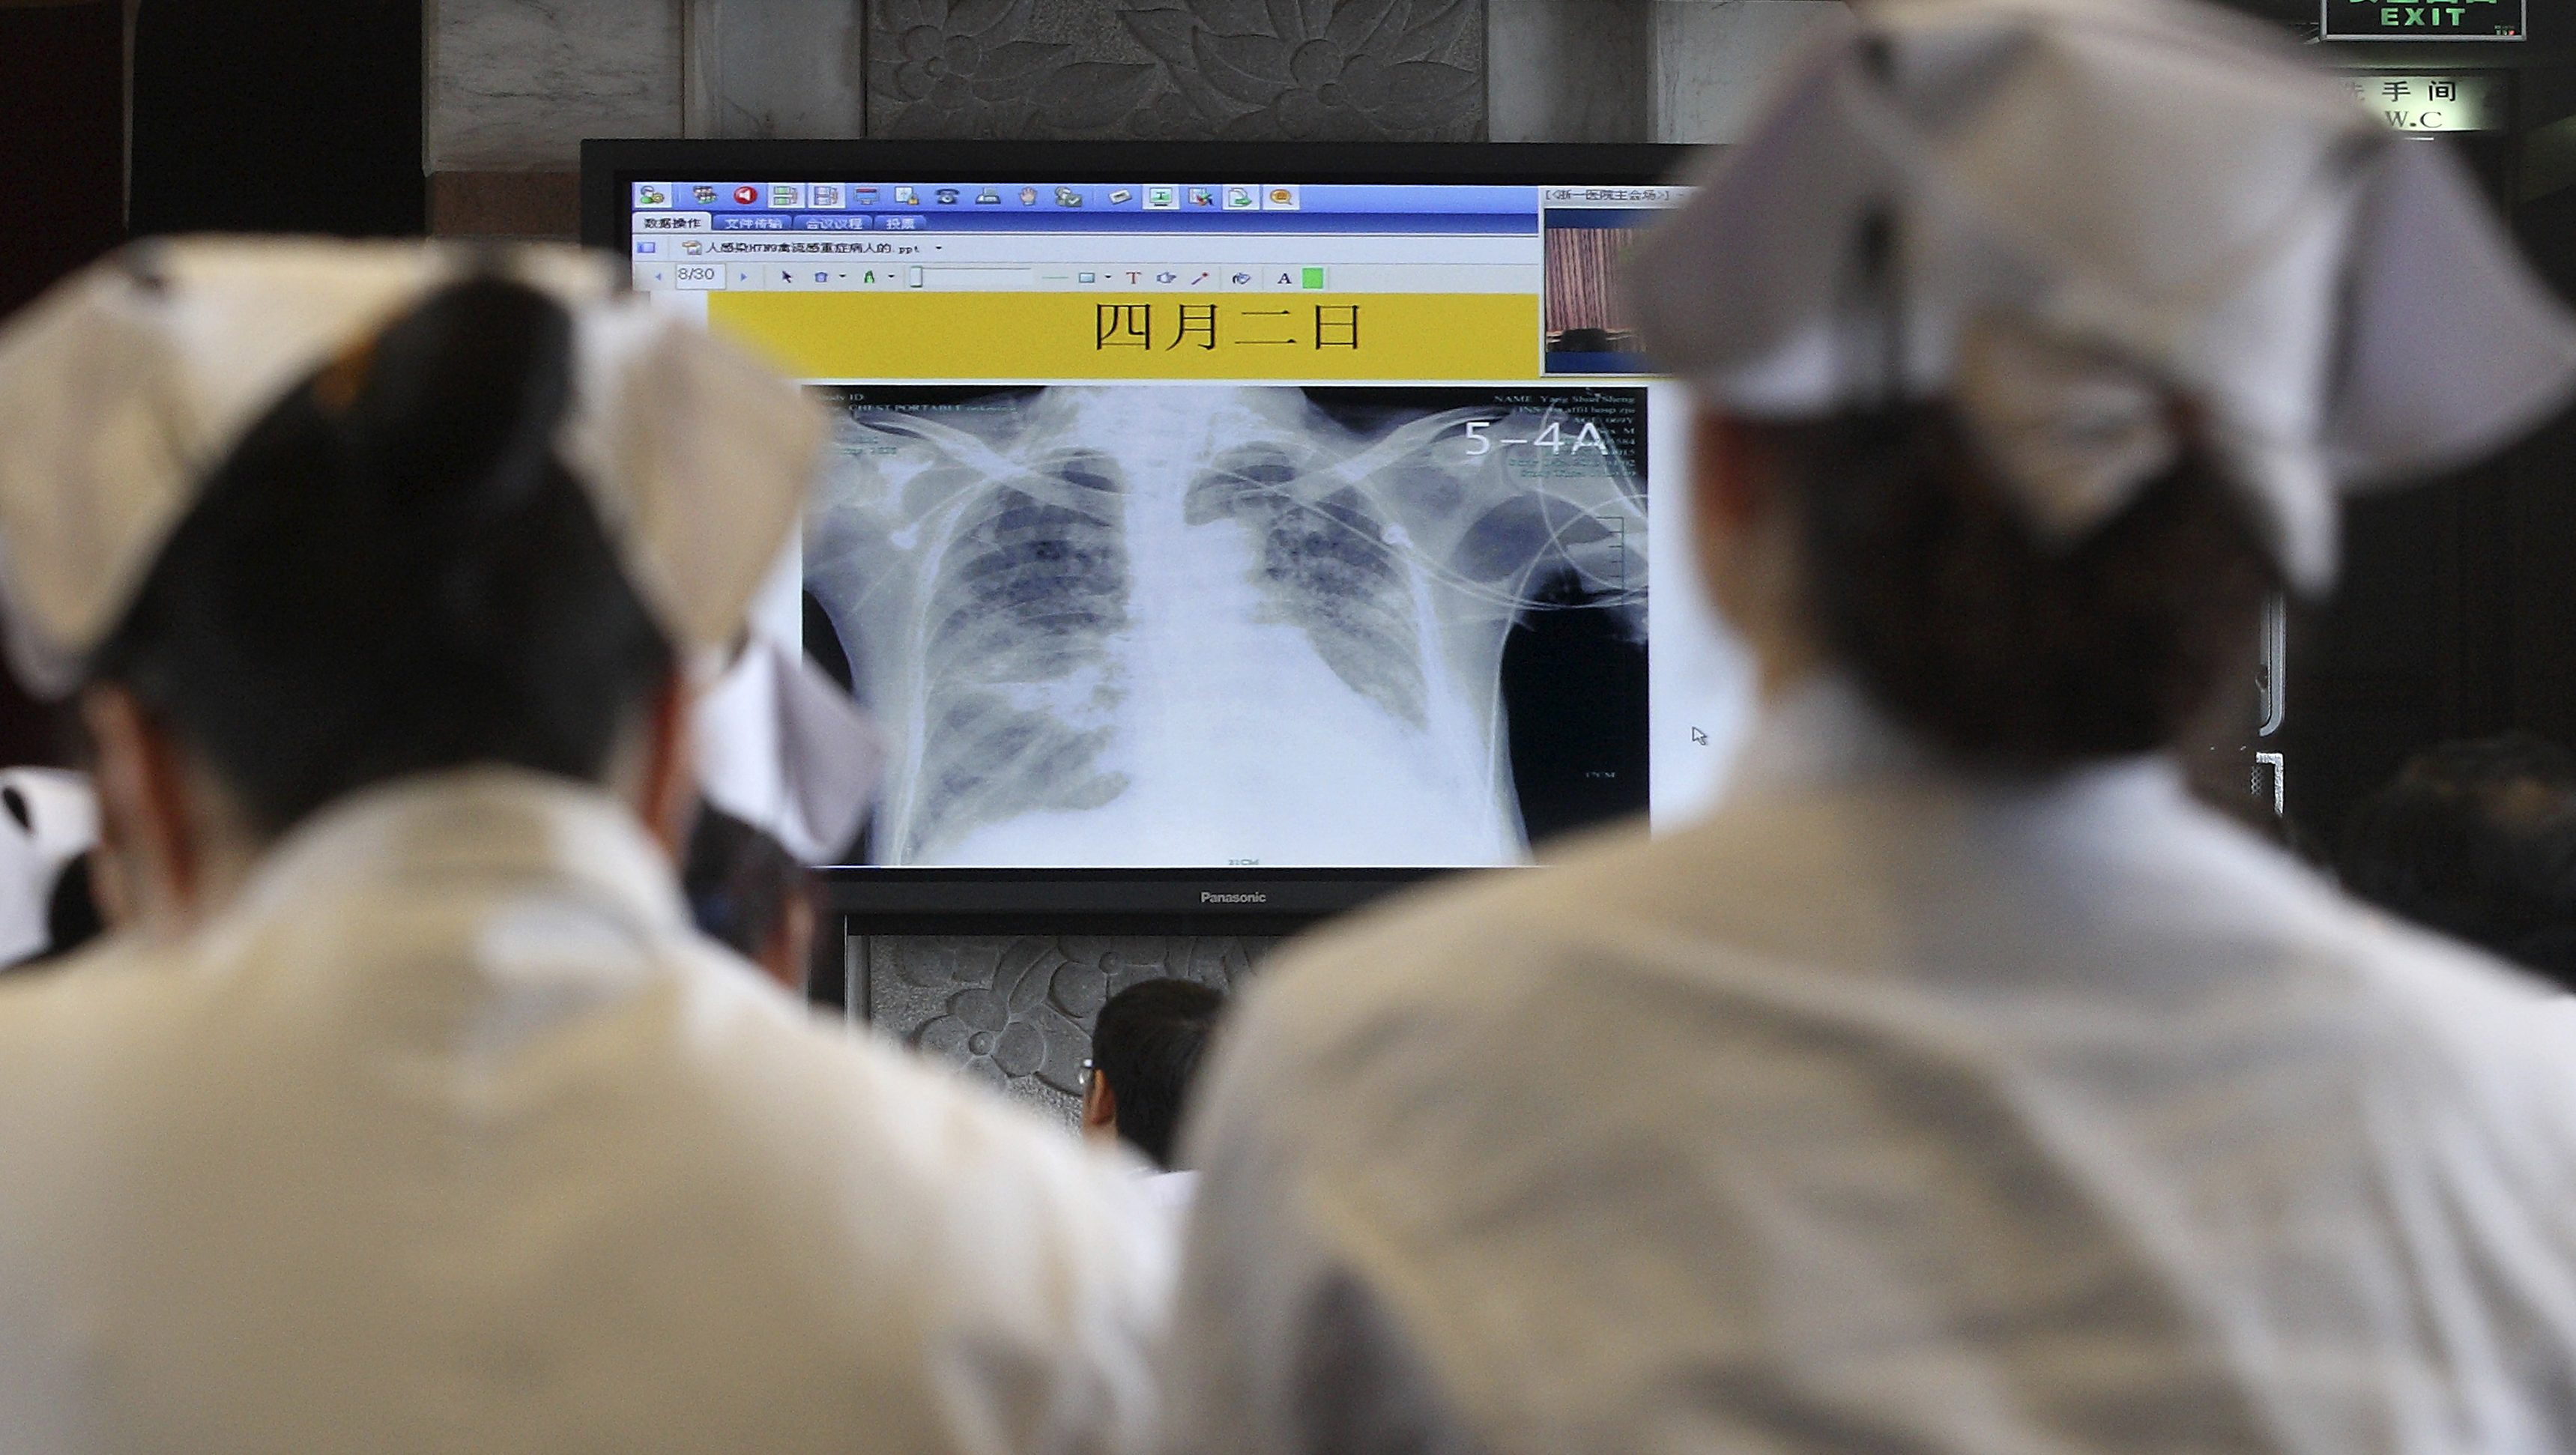 Doctors and nurses attend a training course for treatment of H7N9 virus at a hospital, where a H7N9 patient is being treated, in Hangzhou, Zhejiang province, April 5, 2013. The new strain of bird flu has infected 16 people in China, all in the east of the country. Six people have died, and the outbreak has spread concern overseas and sparked a sell-off in airline shares in Europe and Hong Kong. Picture taken April 5, 2013. REUTERS/Chance Chan